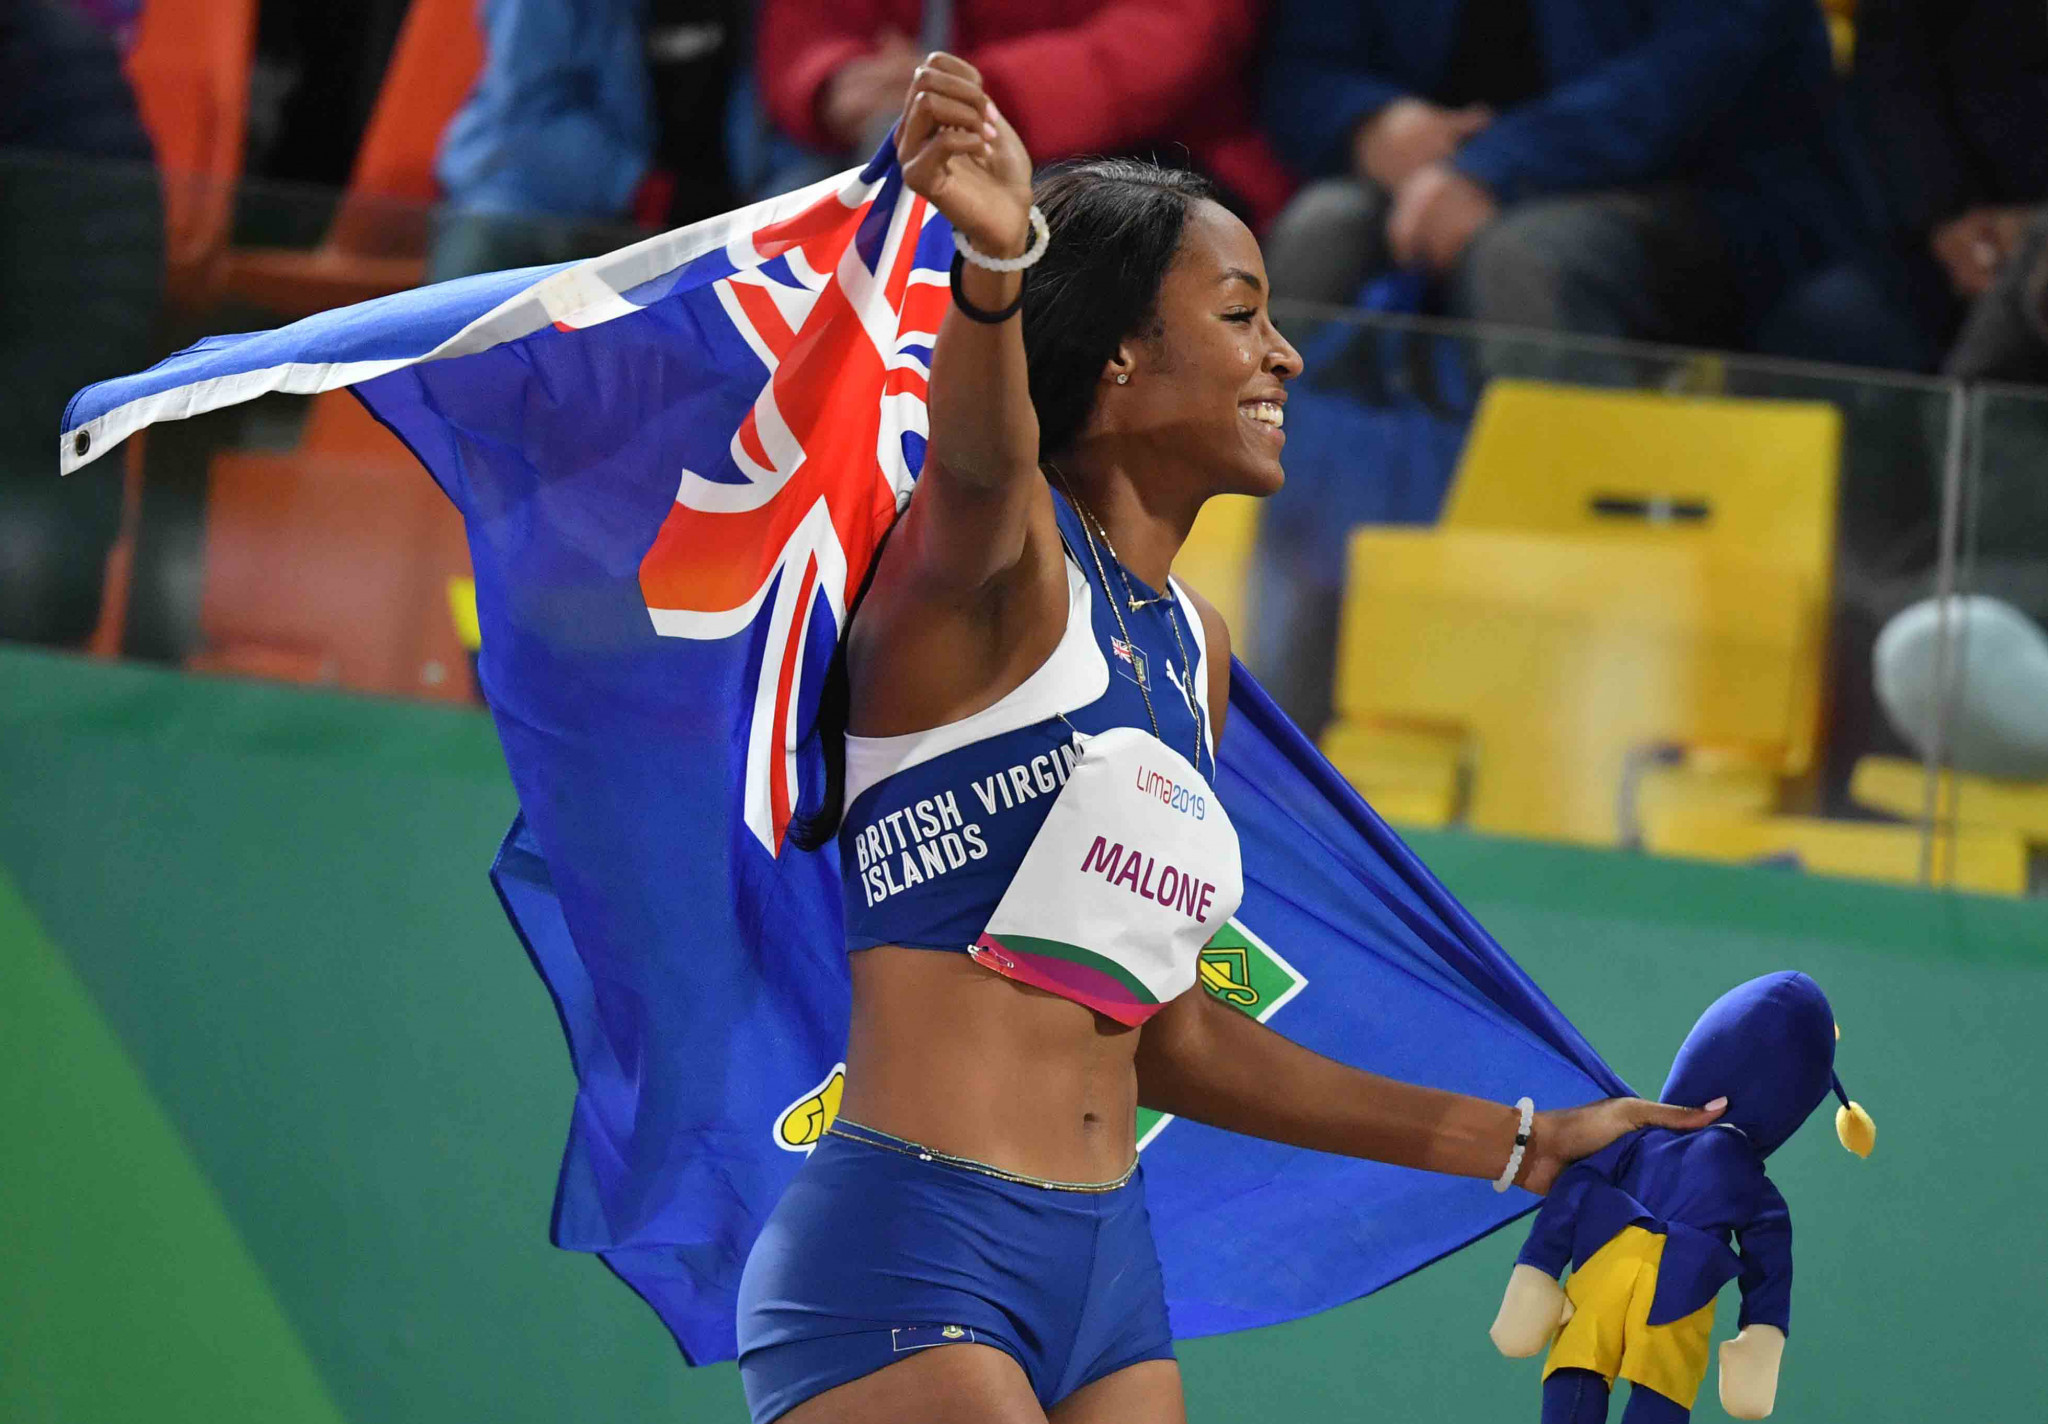 British Virgin Islands secure maiden Pan American Games medal with long jump gold